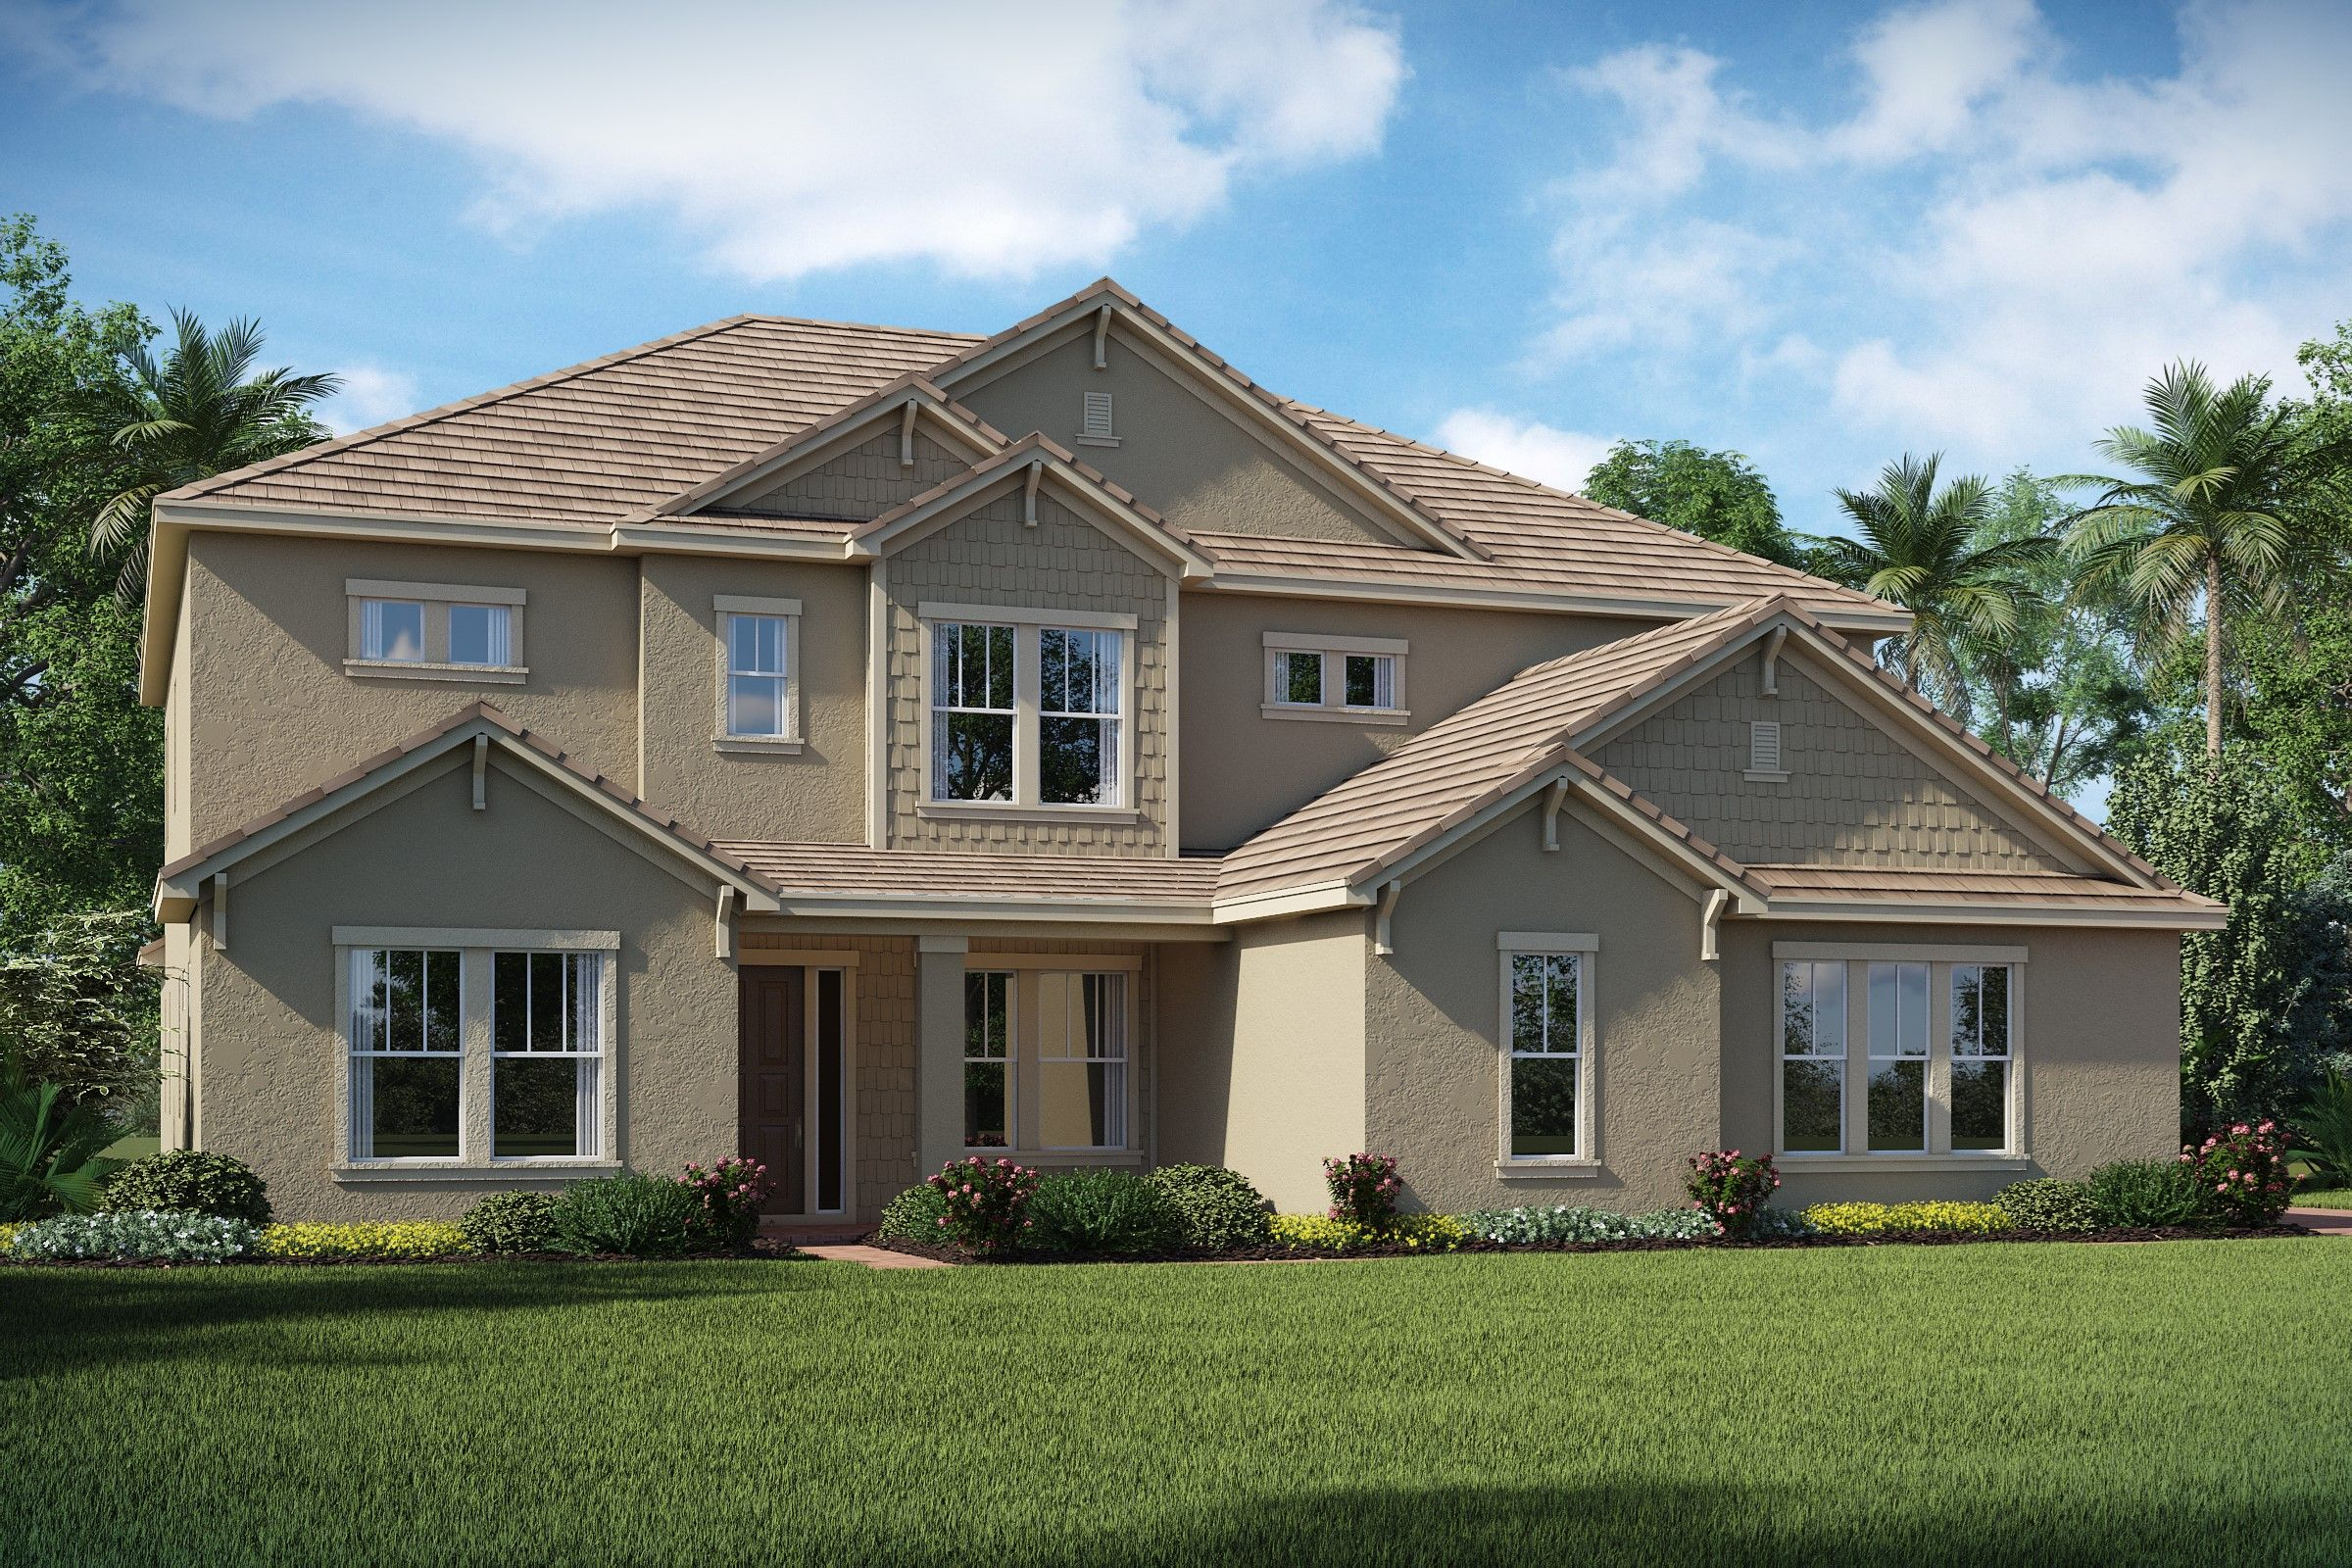 Single Family for Sale at Redtail - Bremore Iii 32049 Red Tail Blvd Sorrento, Florida 32776 United States